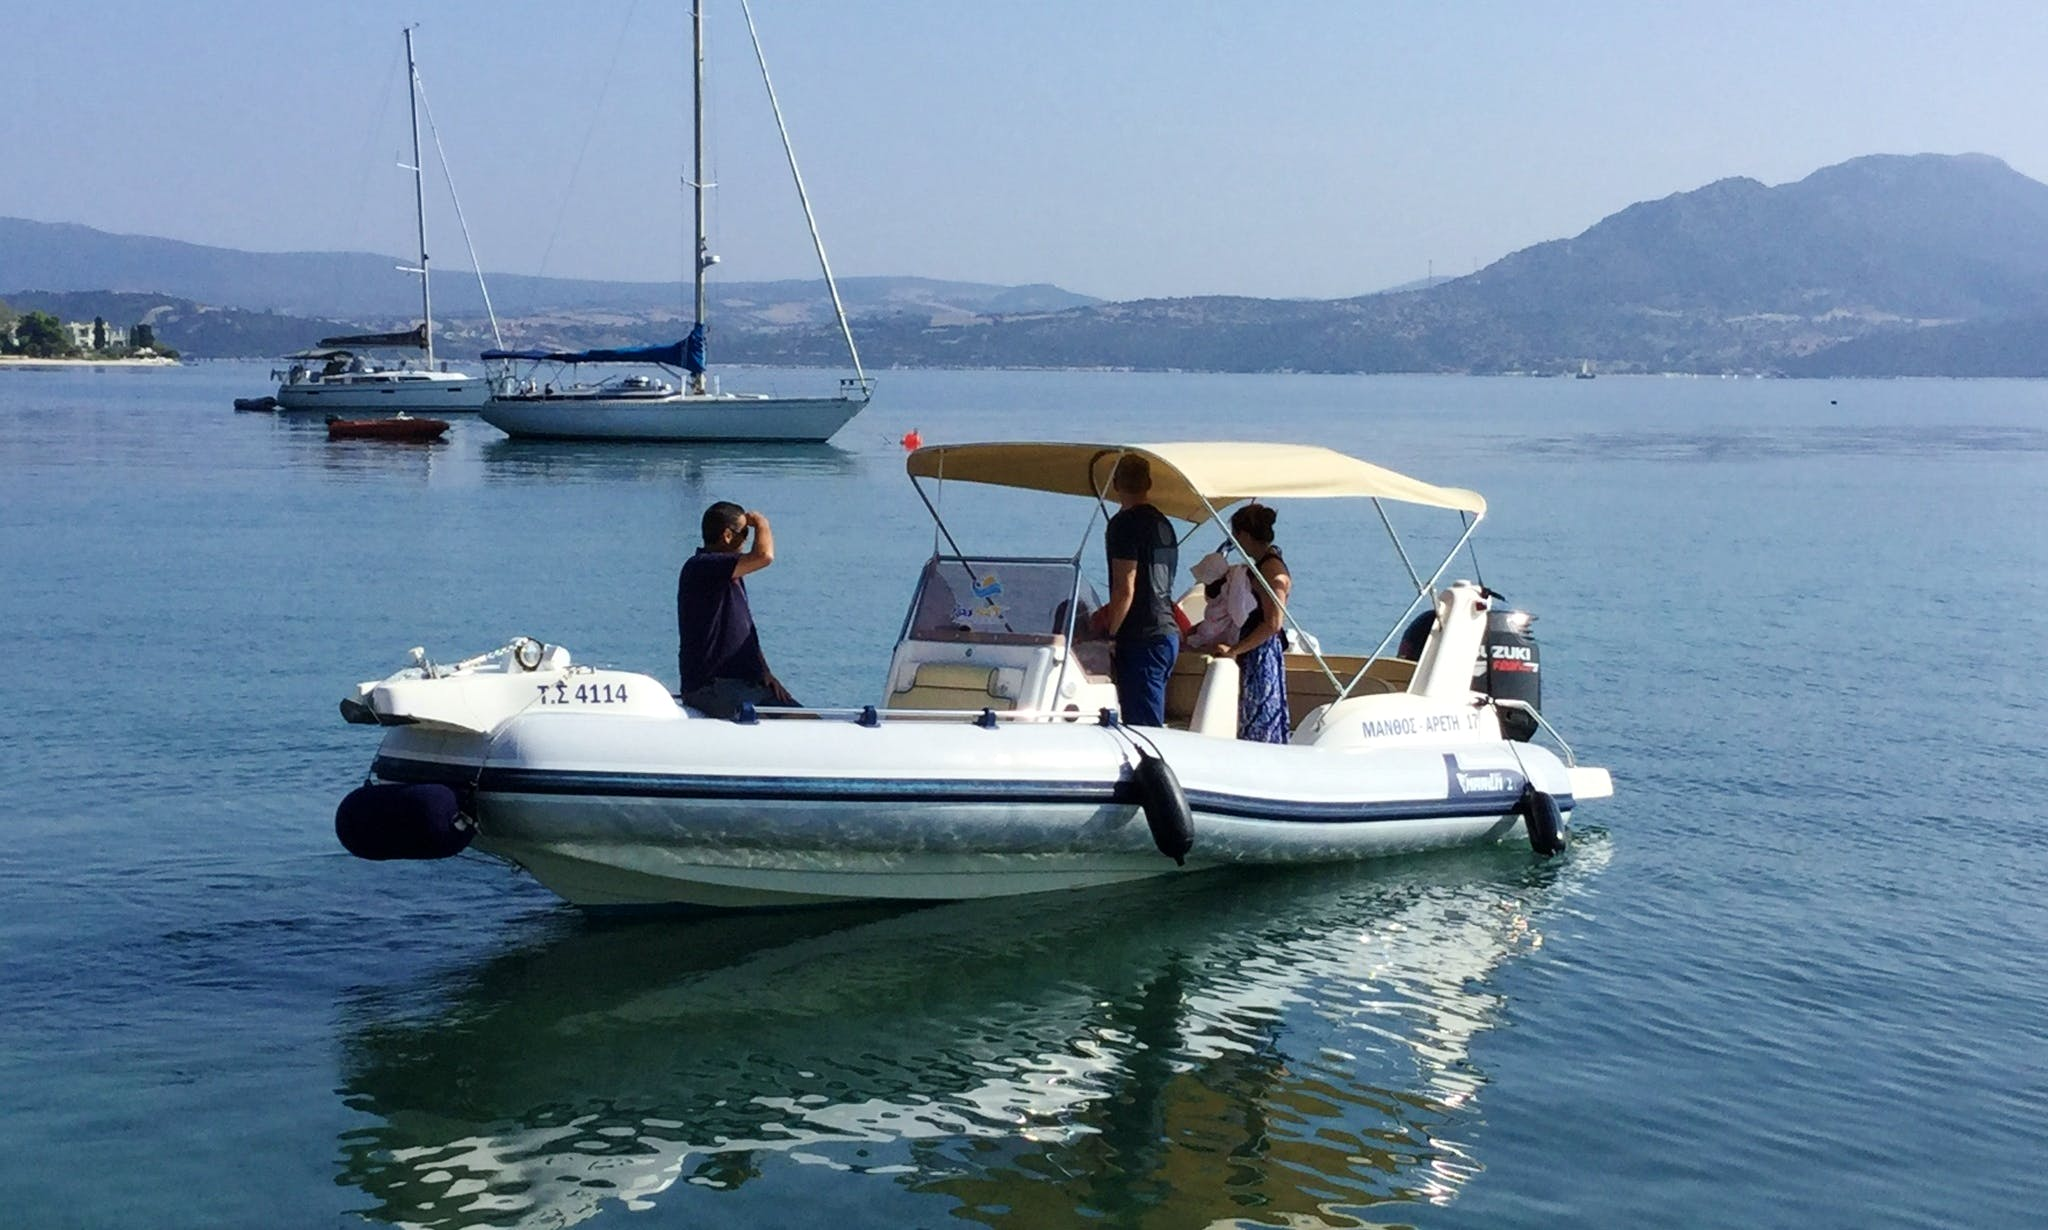 RIB Marlin 21 Suzuki 175hp 2018mod in Nikiana Lefkada Greece